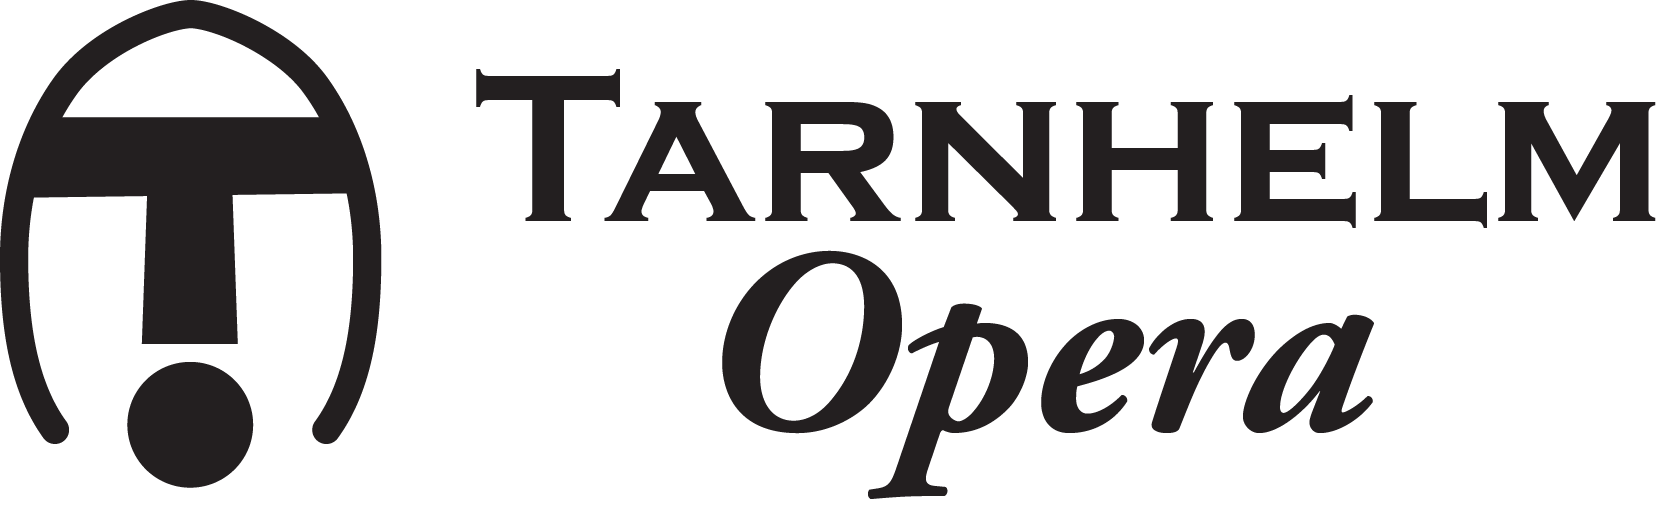 Tarnhelm Opera banner black on transparent background 1666 × 509px tight